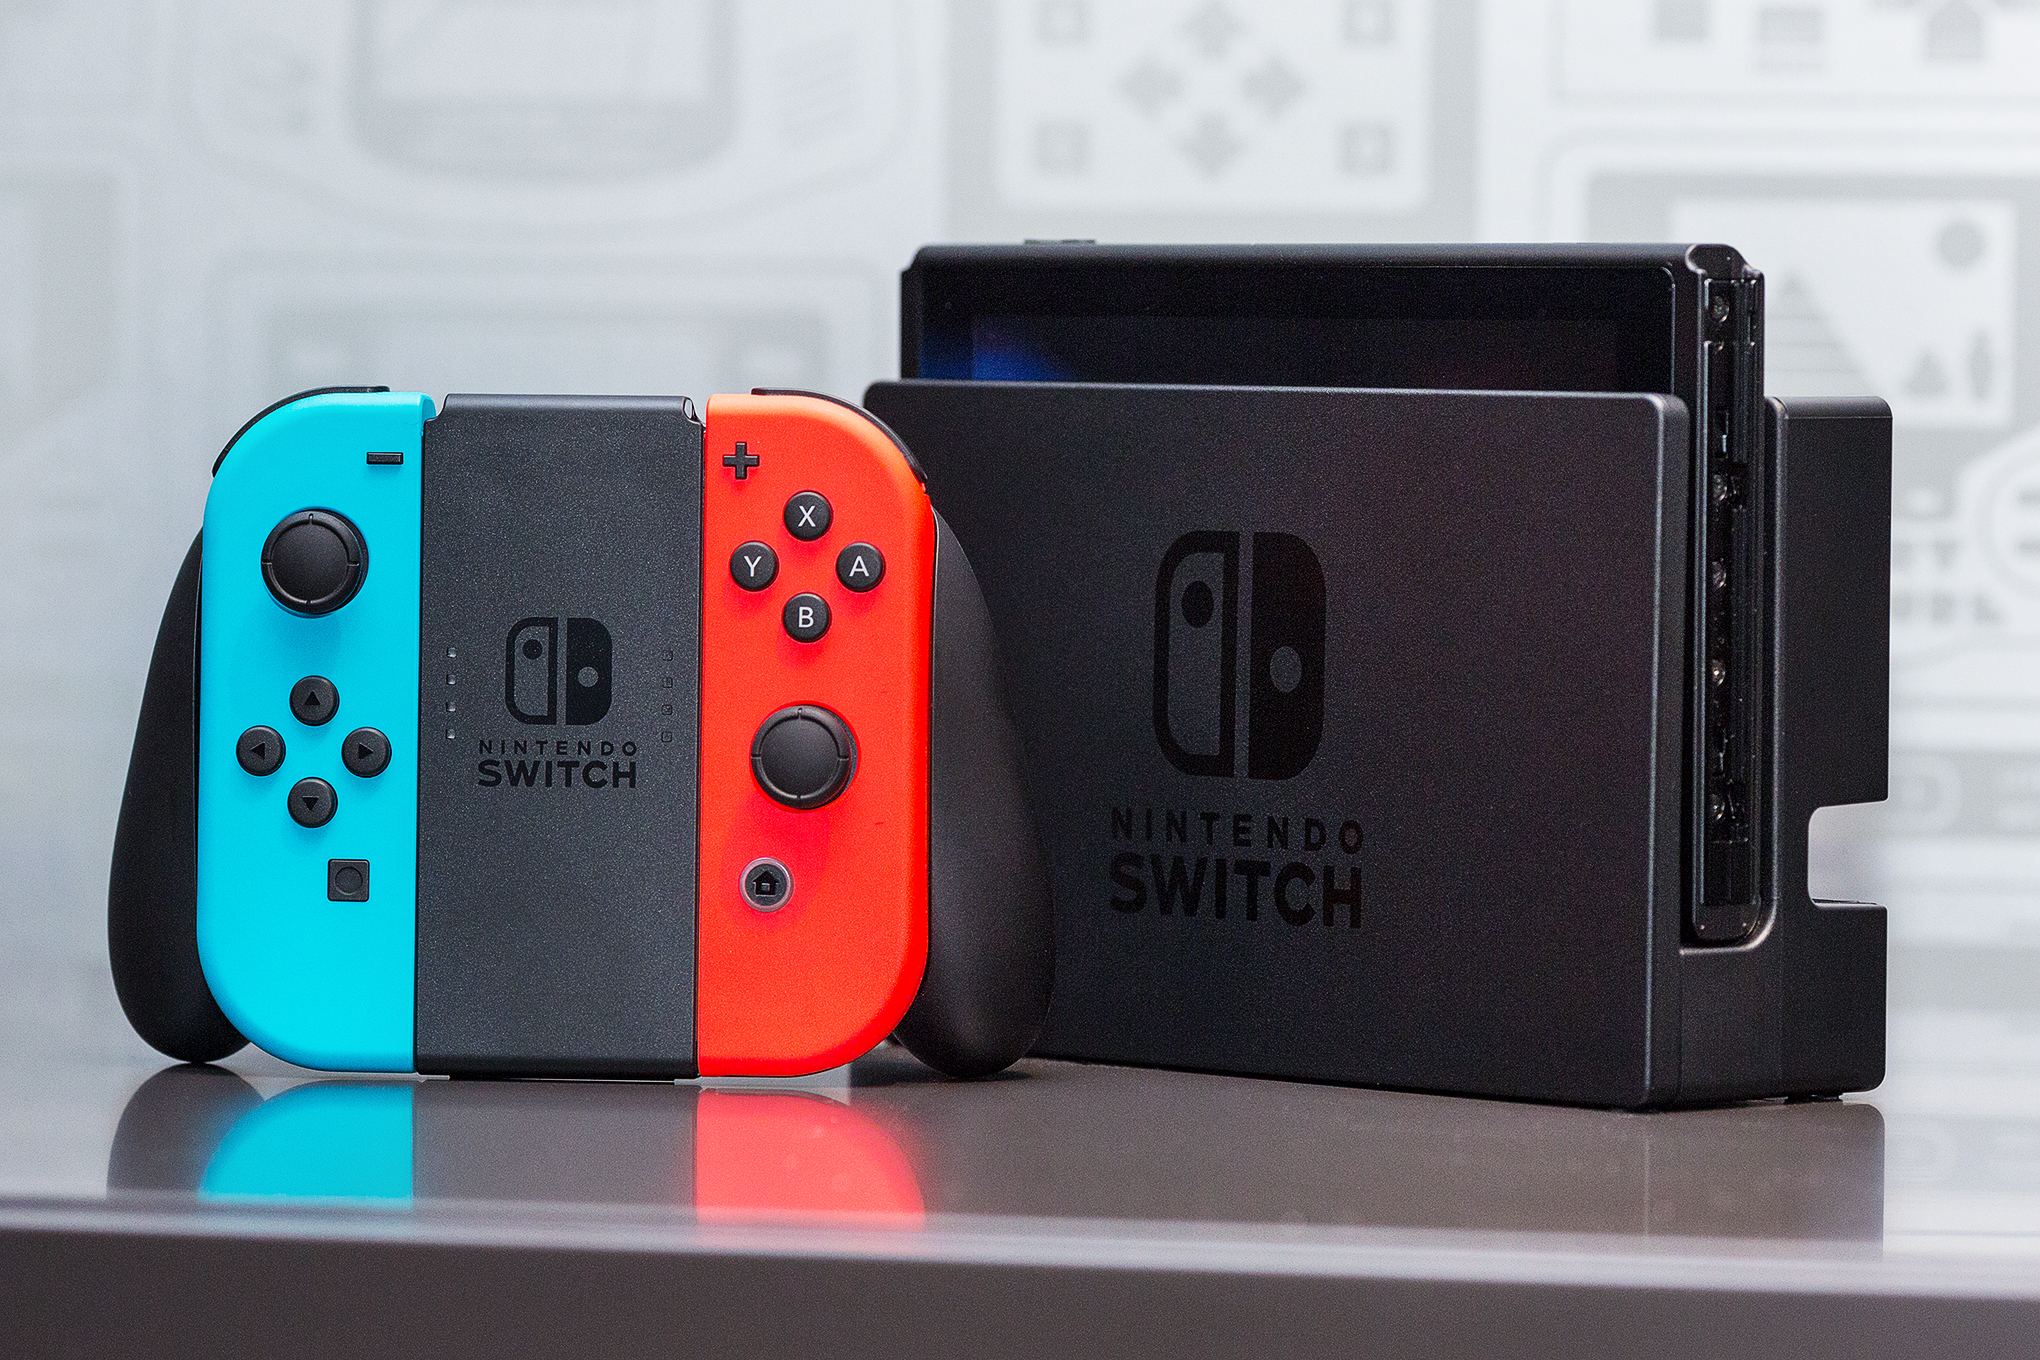 Nintendo Switch's launch lineup is secretly great